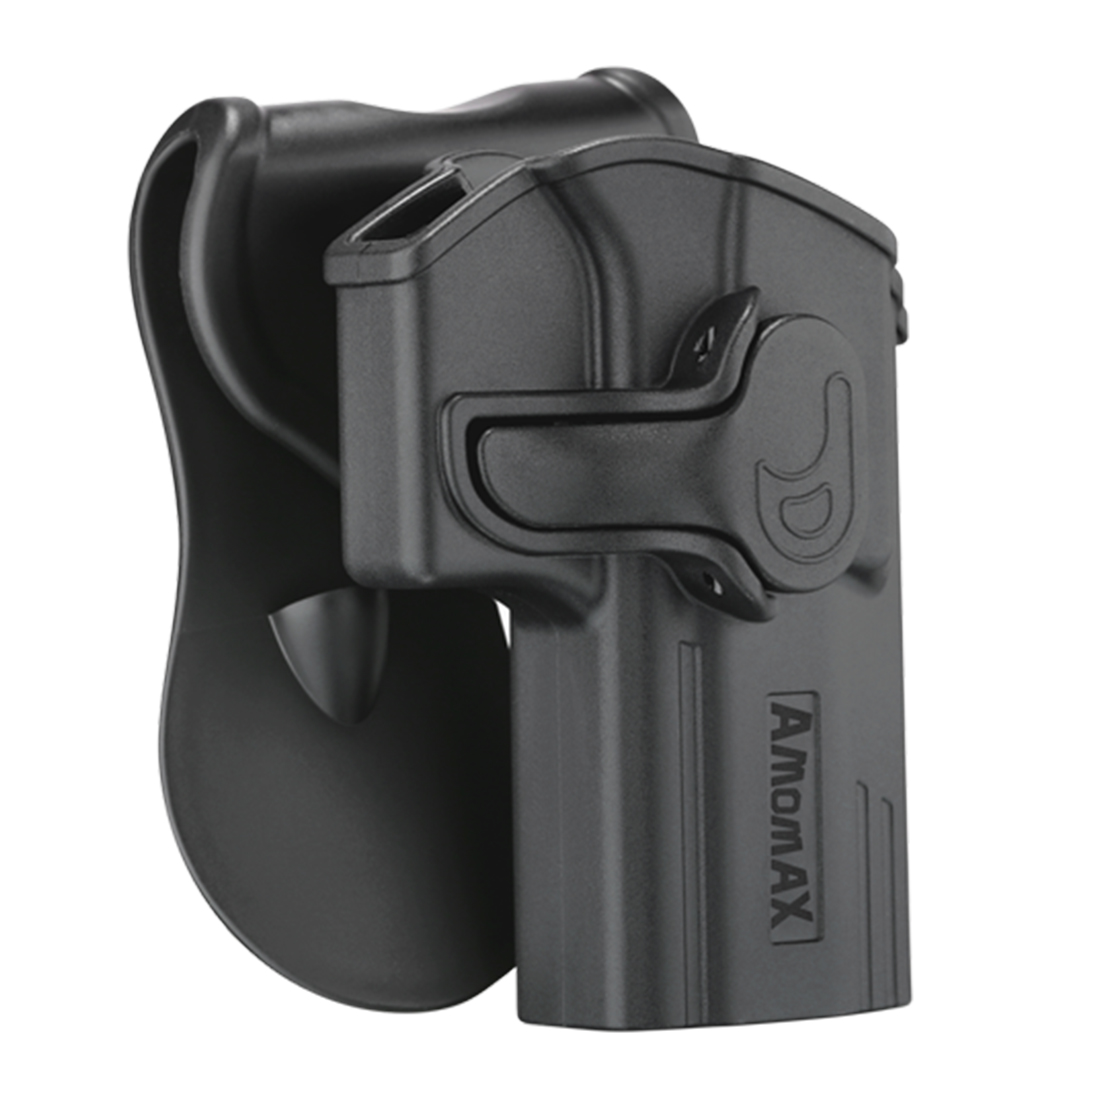 Amomax Adjustable Tactical Holster For Jericho 941 - Right-handed Black(Standard Only With Waist Plate, No Other Accessories)